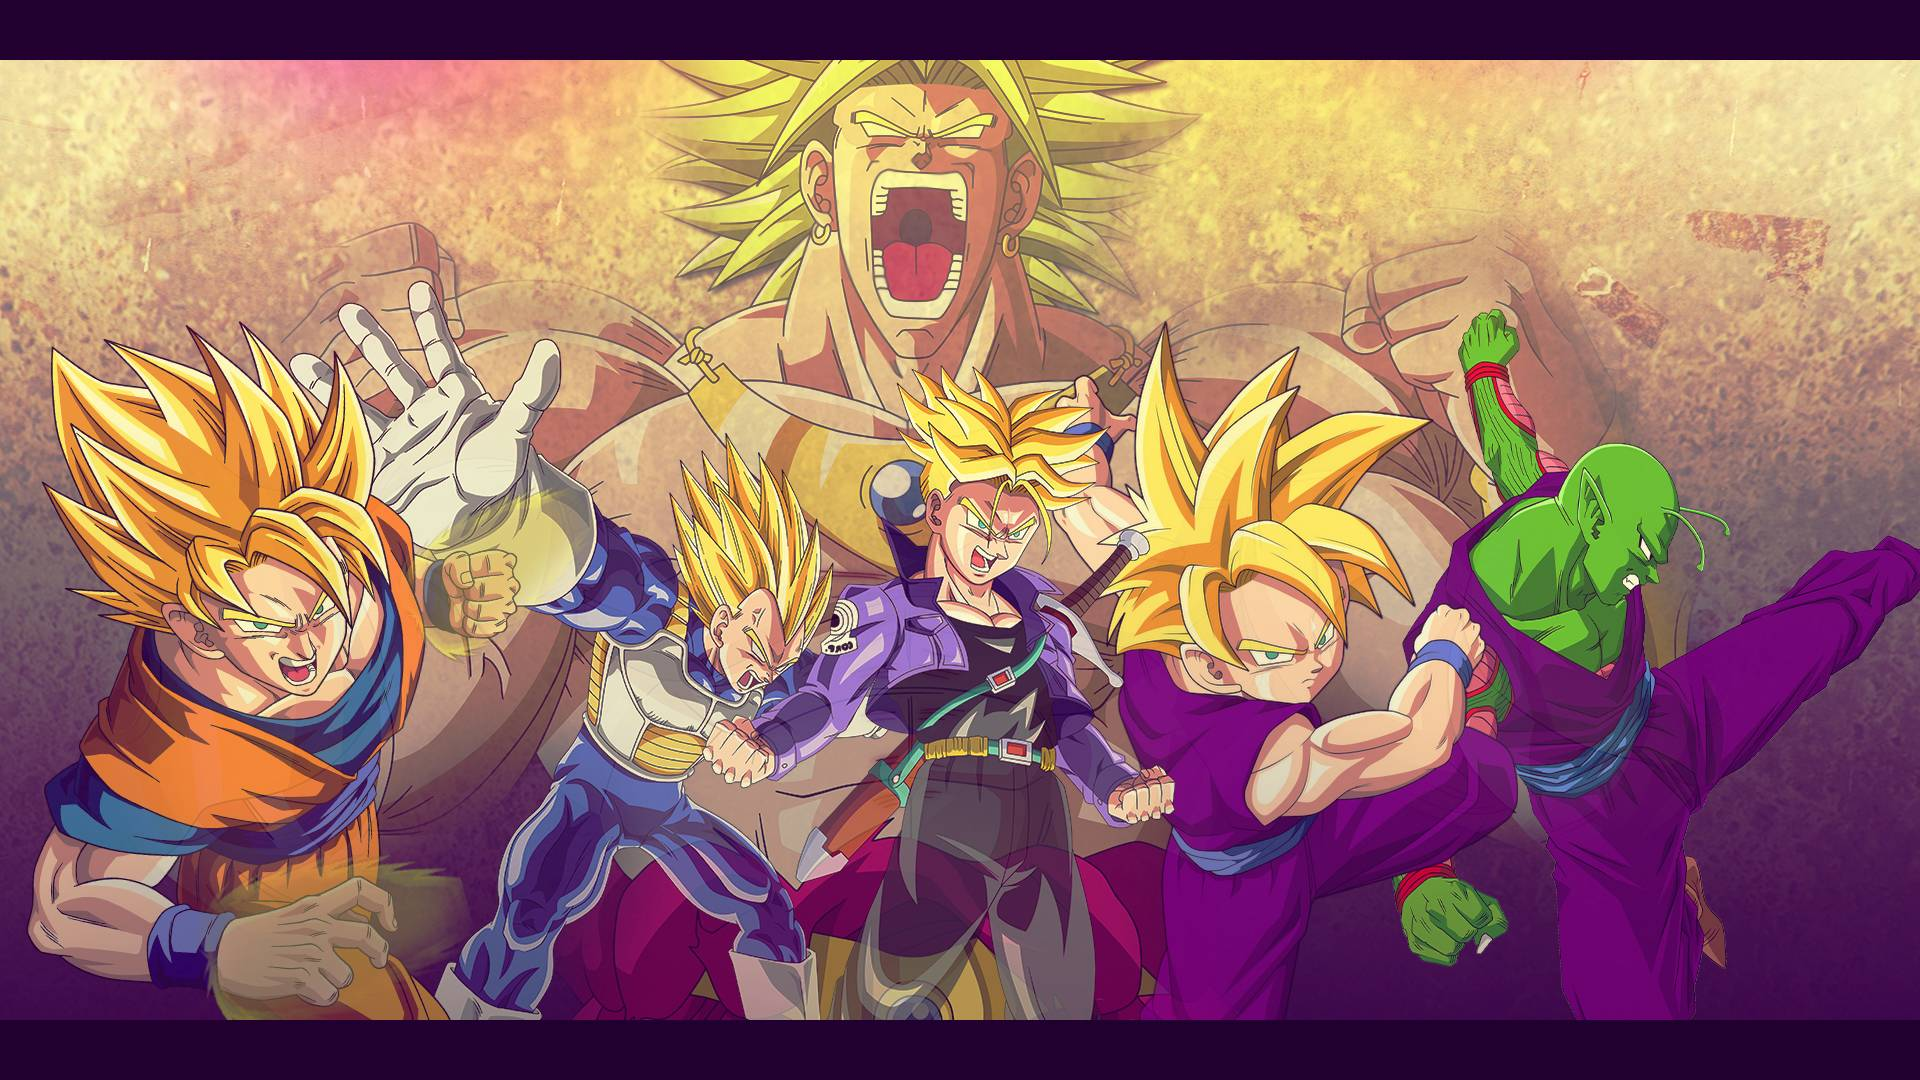 Z Fighters Vs Broly Wallpaper 19201080 By Oirigns On DeviantArt